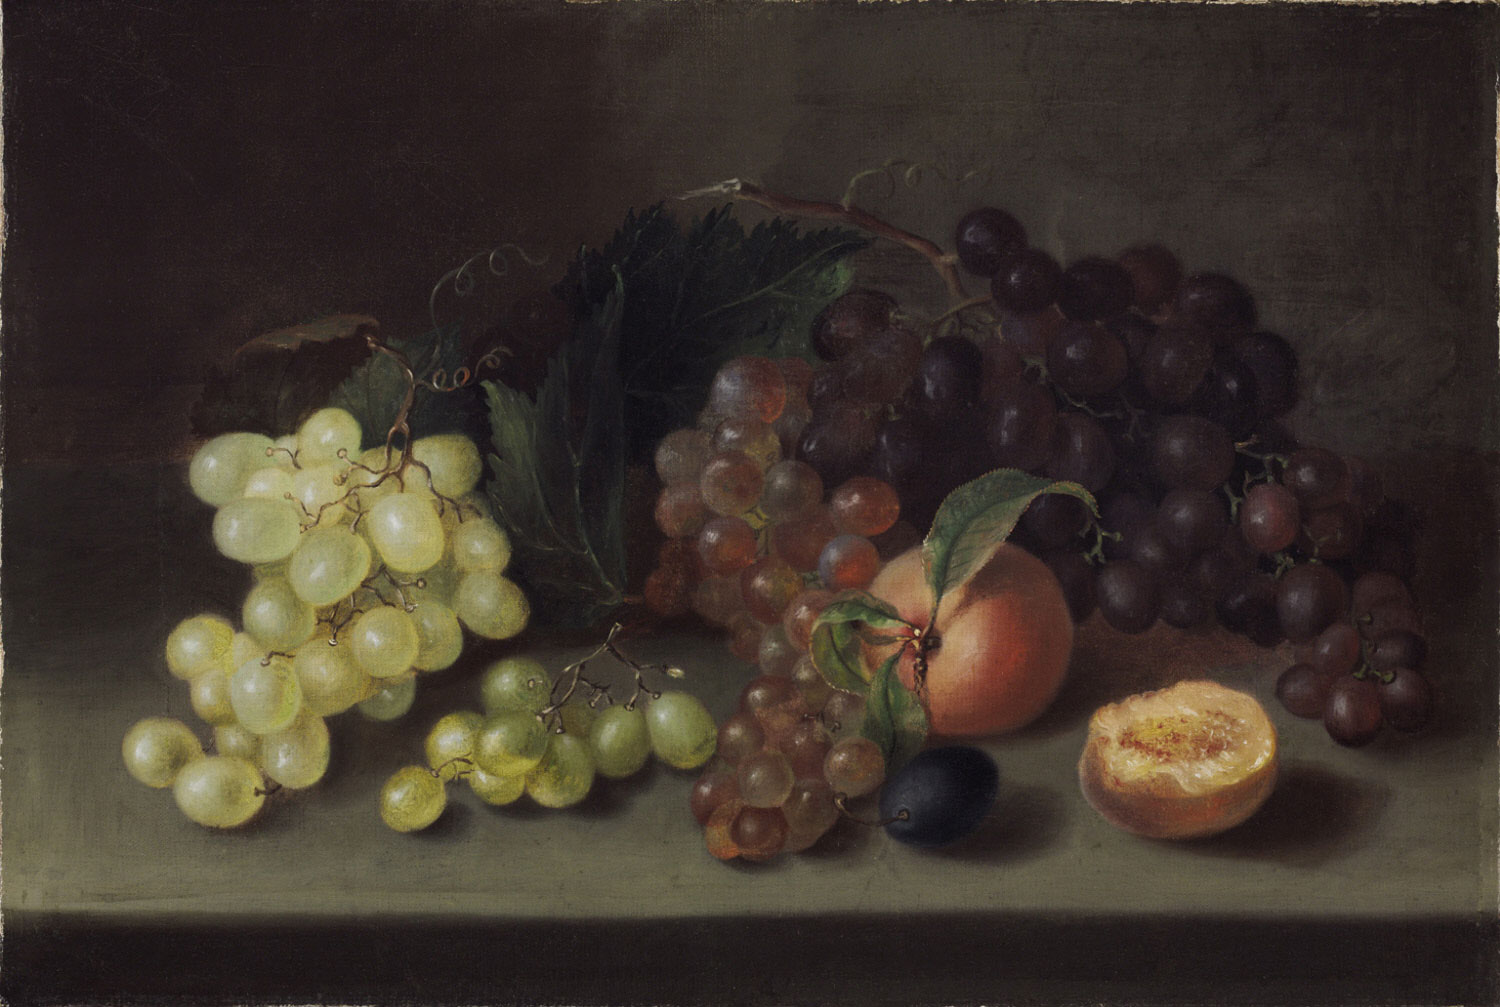 Still life painting of grapes and peaches